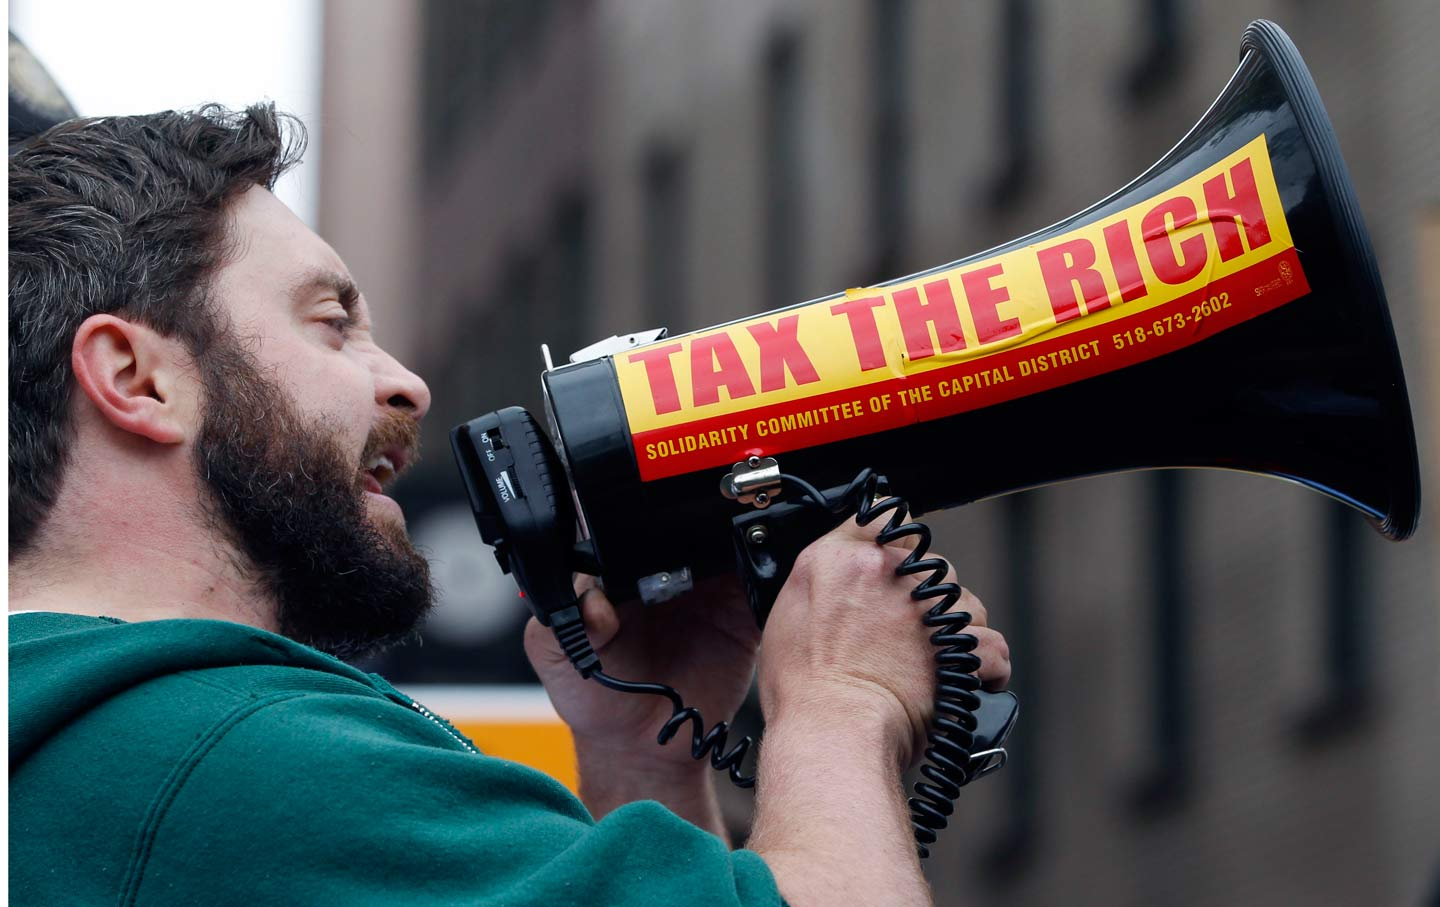 A protester with a bullhorn at a protest in Albany